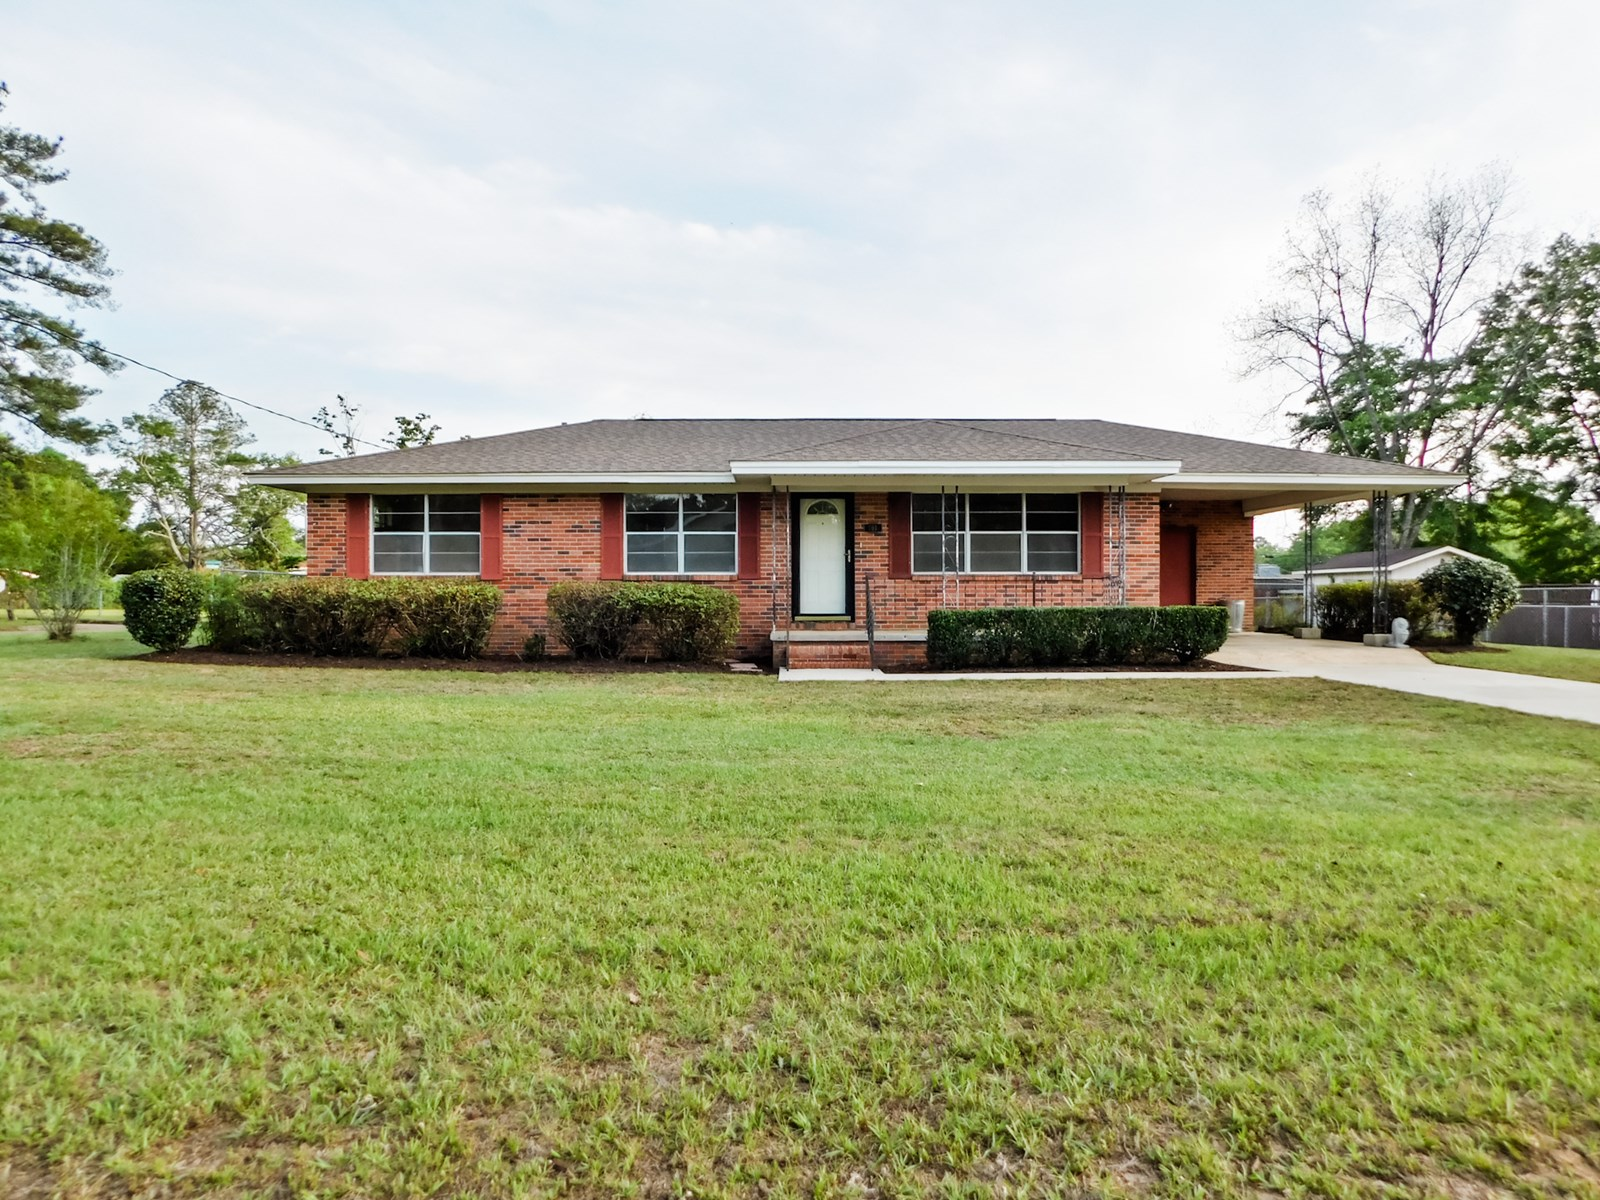 Small Family Home for Sale in Town Geneva, Alabama